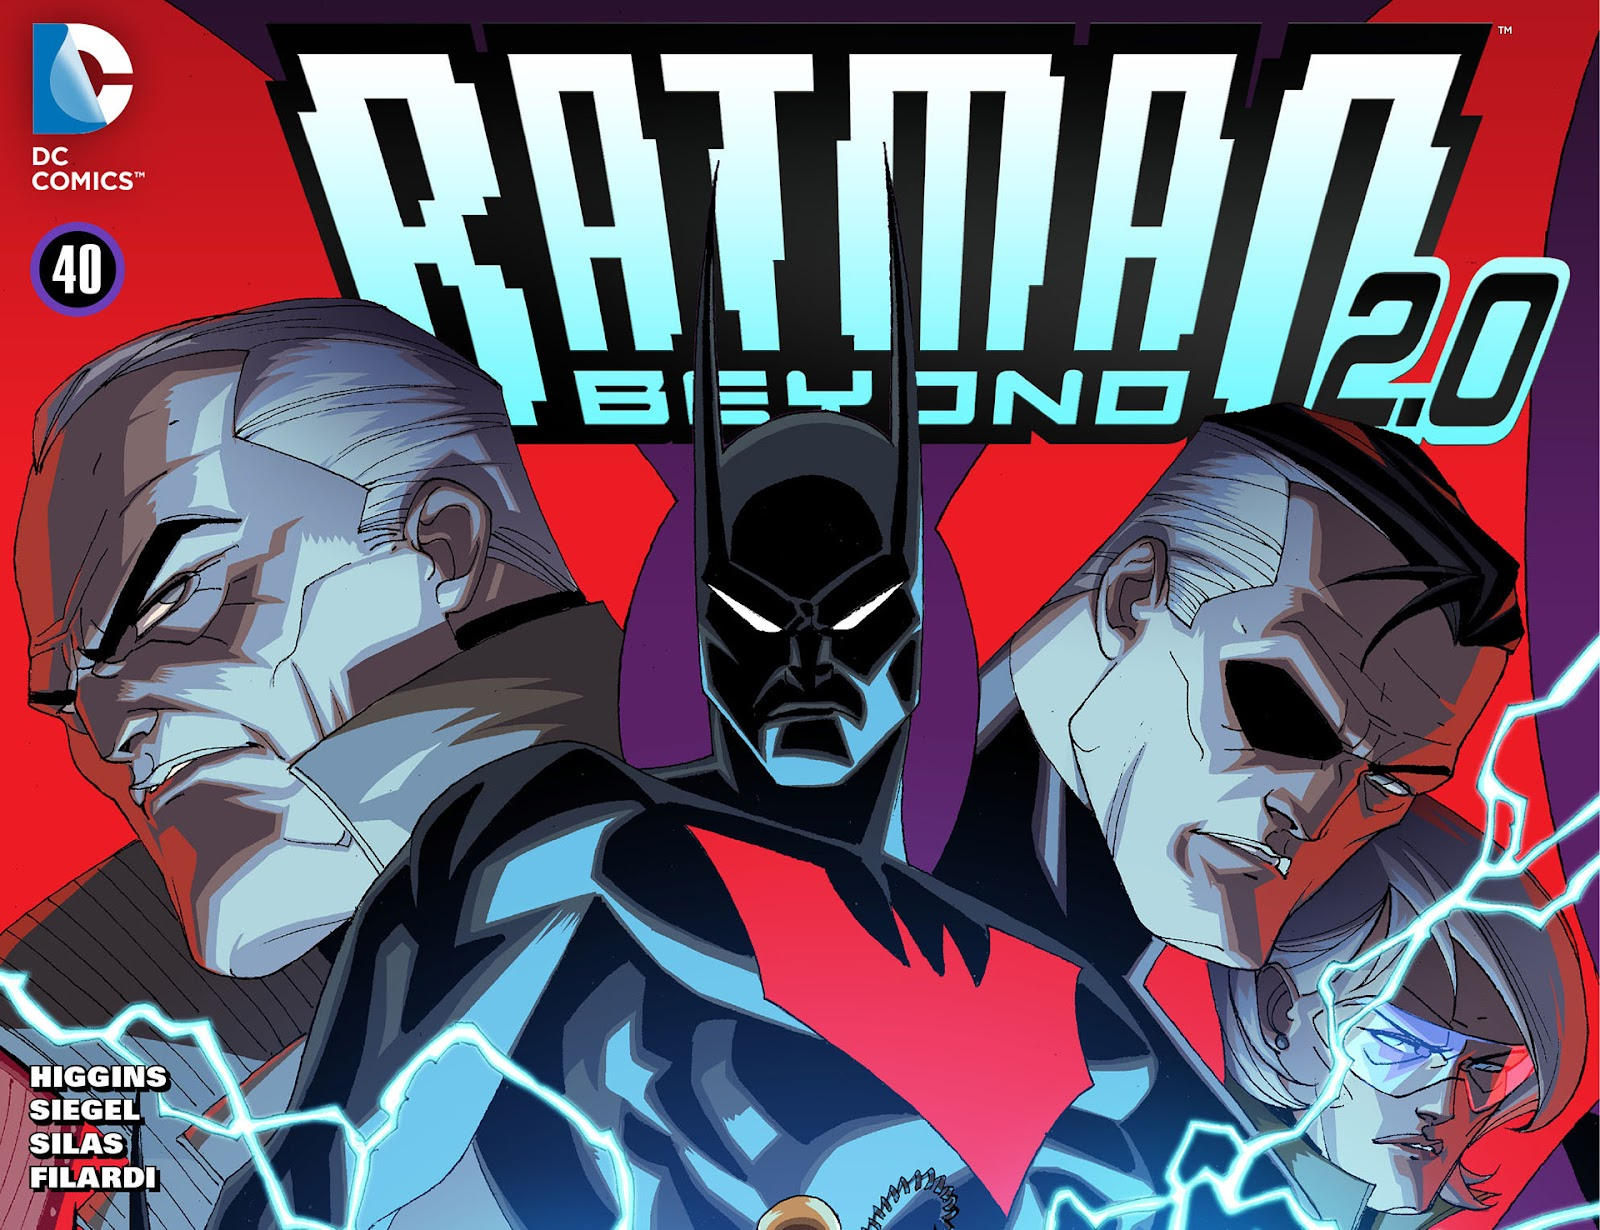 Batman Beyond 2.0 issue 40 - Page 1